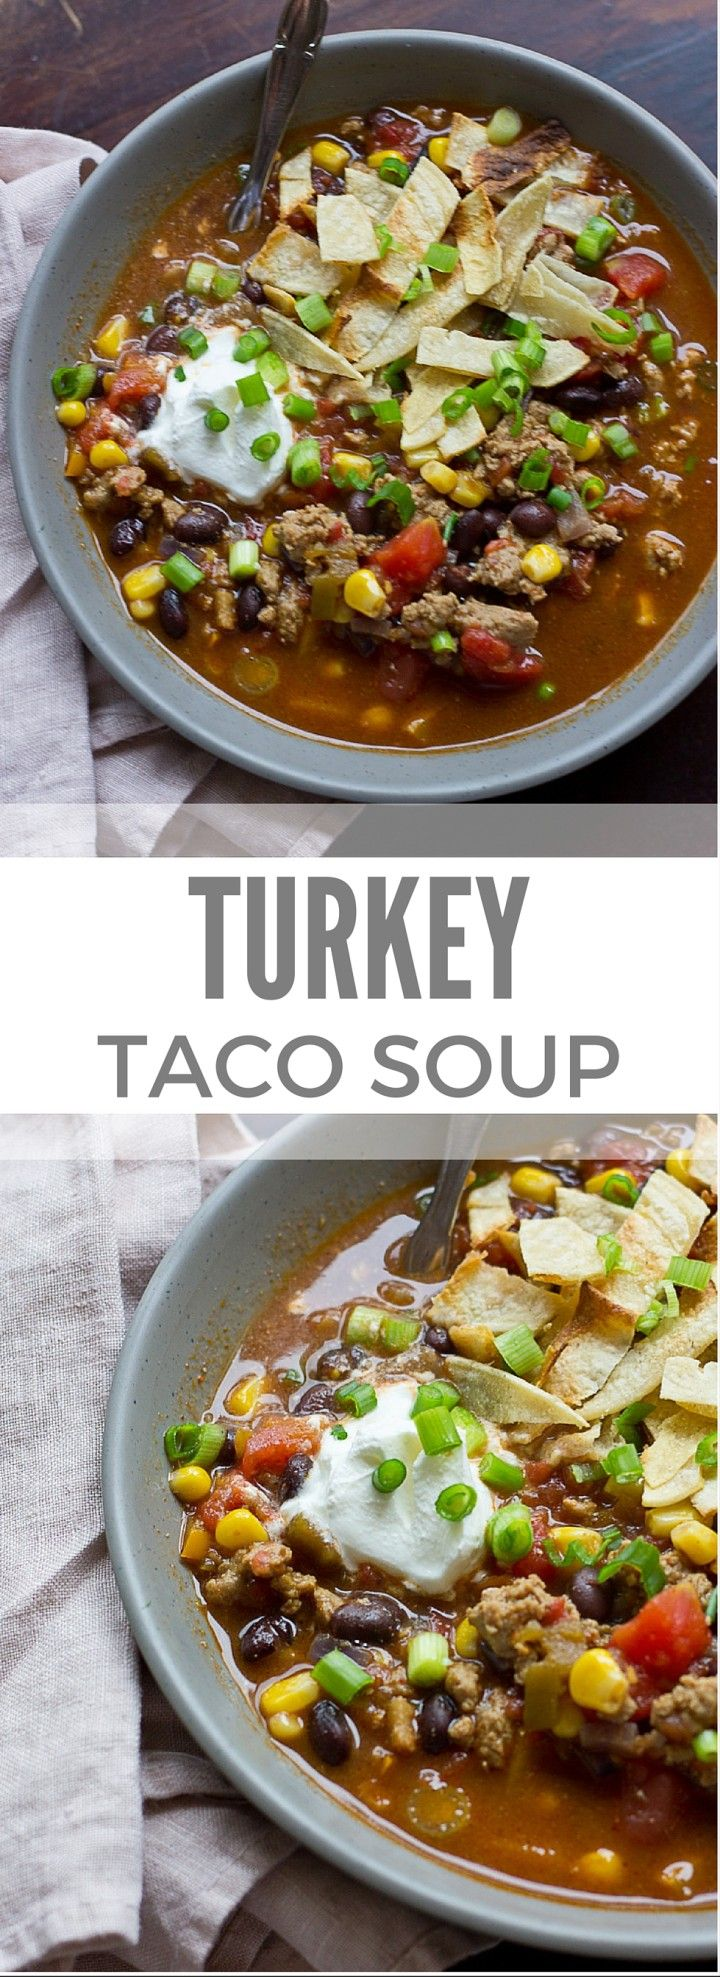 This Turkey Taco Soup is easy peasy to make for a weeknight dinner... a healthy meal the whole family will enjoy. Toss all ingredients into a pot and simmer until you're ready to eat! The toppings are the best part!!